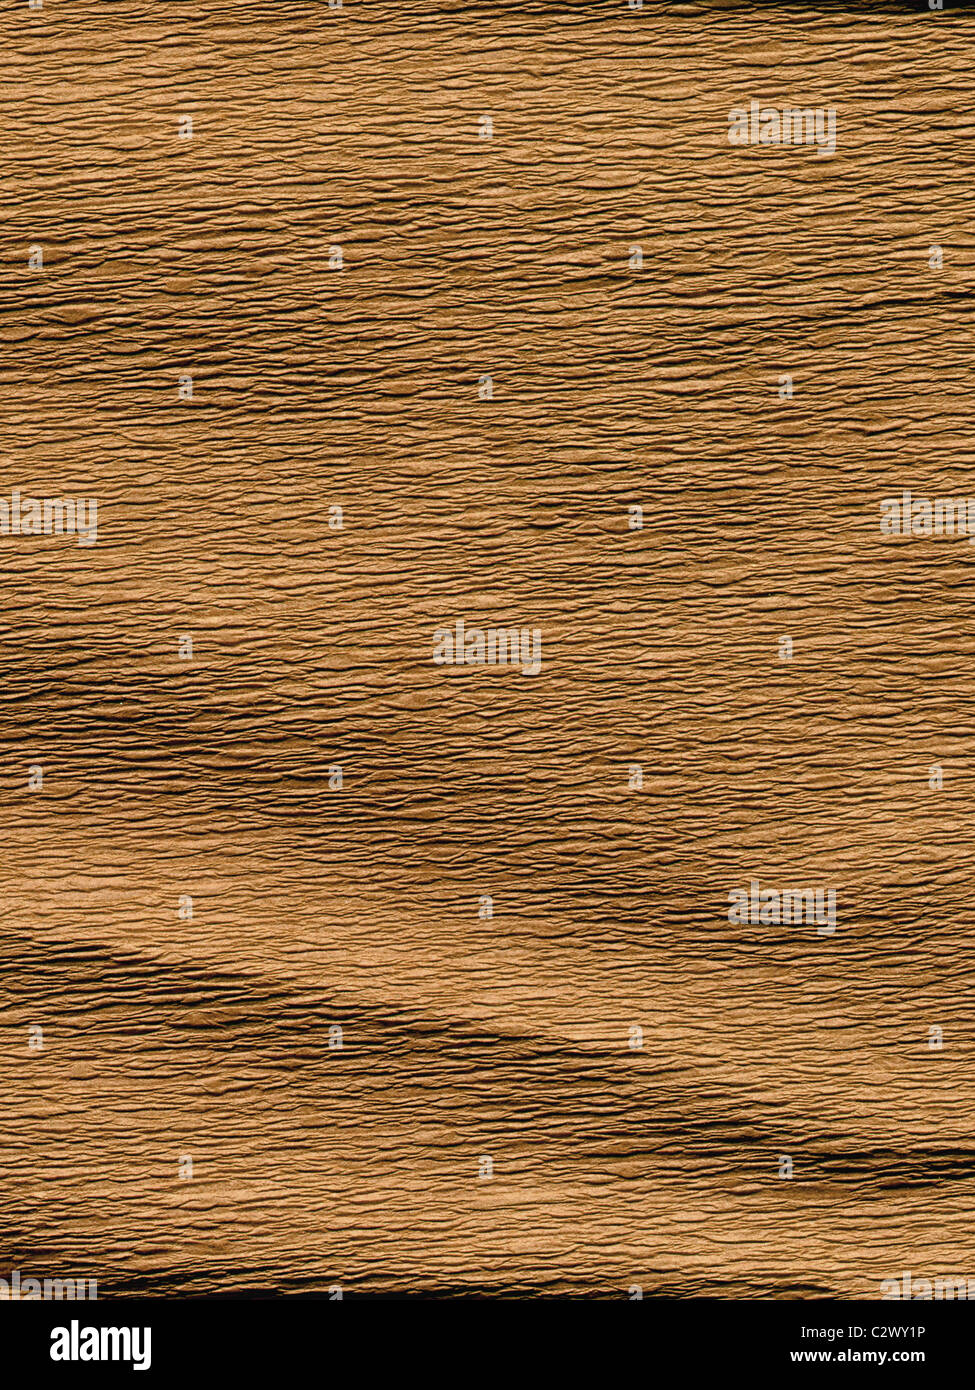 dirty paper surface texture - Stock Image